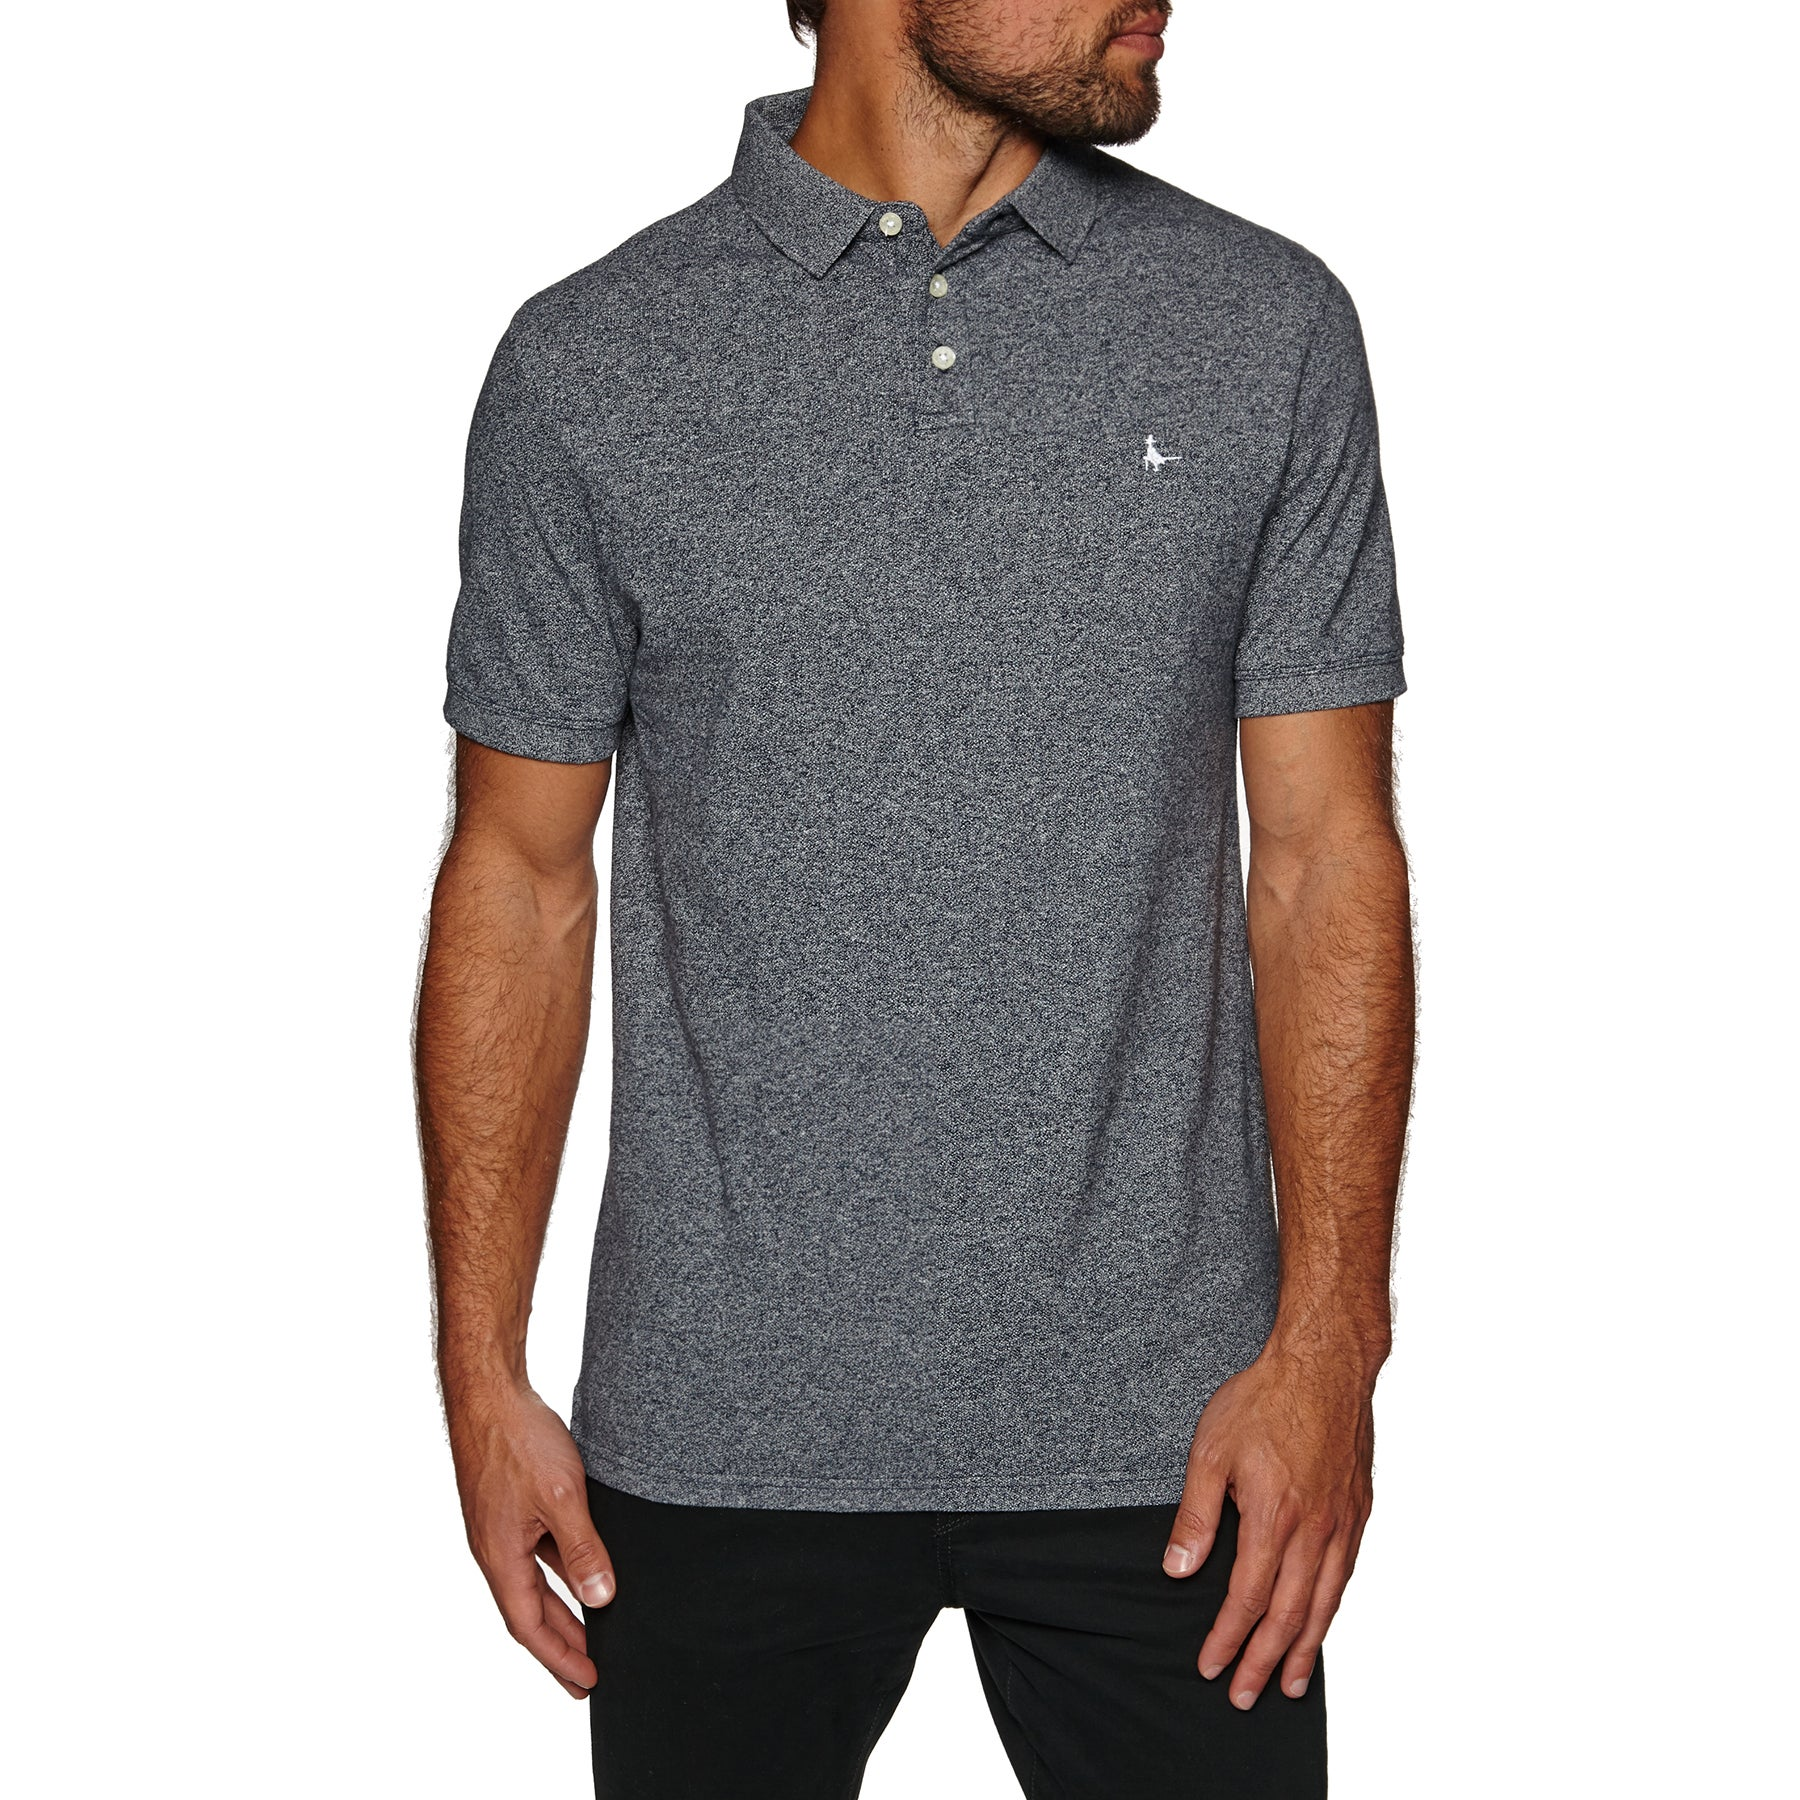 Jack Wills Langold Jaspe Pique Polo Shirt - Navy